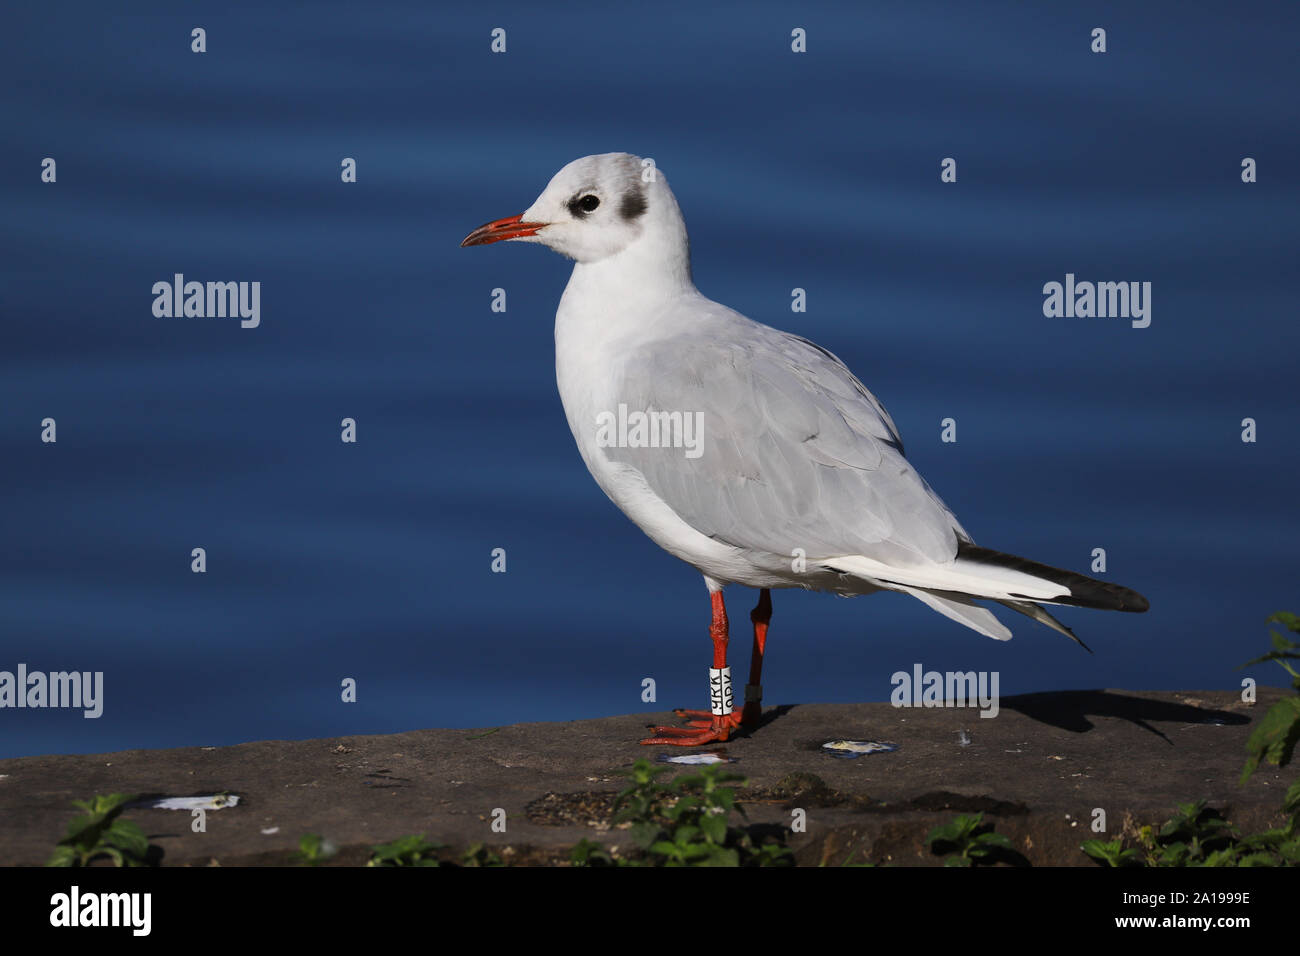 Adult Black Headed Gull (Chroicocephalus ridibundus) standing by the edge of a lake.  Taken in Cardiff, Wales, UK Stock Photo